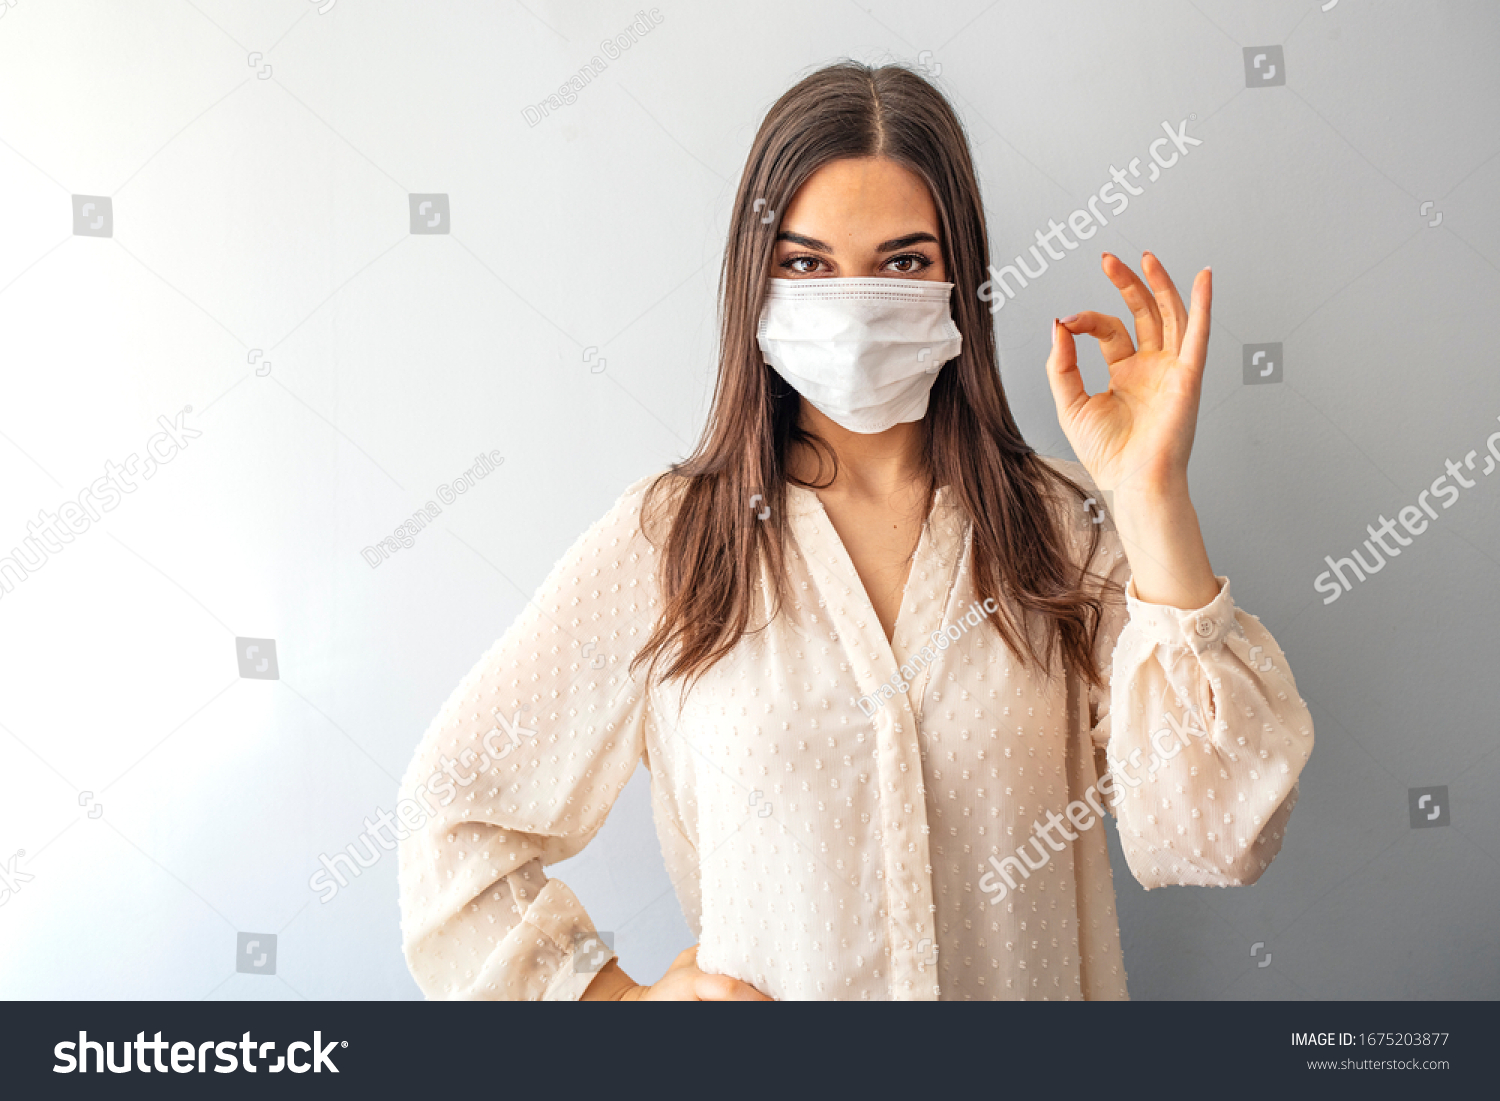 Young woman wearing medical face mask, studio portrait. Woman Wearing Protective Mask and Showing OK sign. Woman wearing surgical mask for corona virus #1675203877